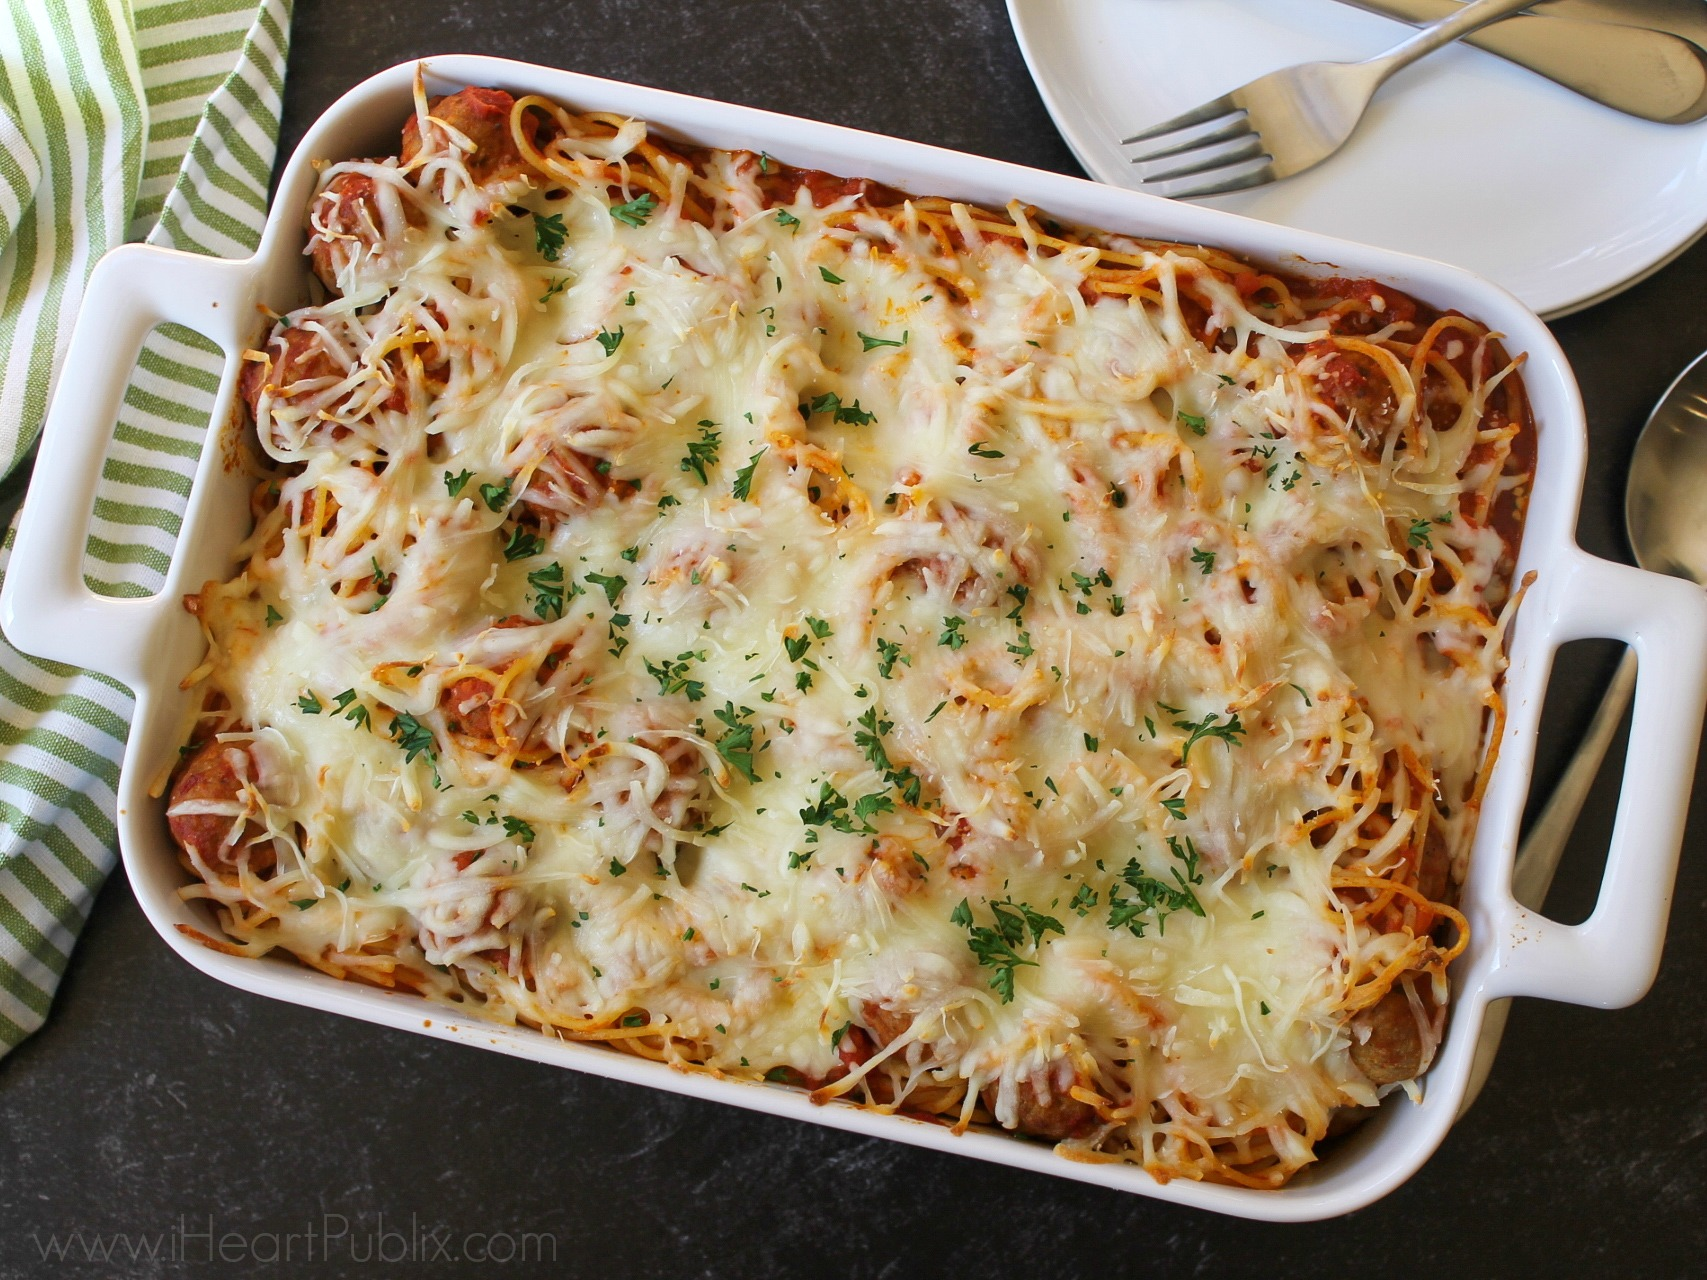 Baked Spaghetti Meatballs Super Meal To Go With The Sales At Publix